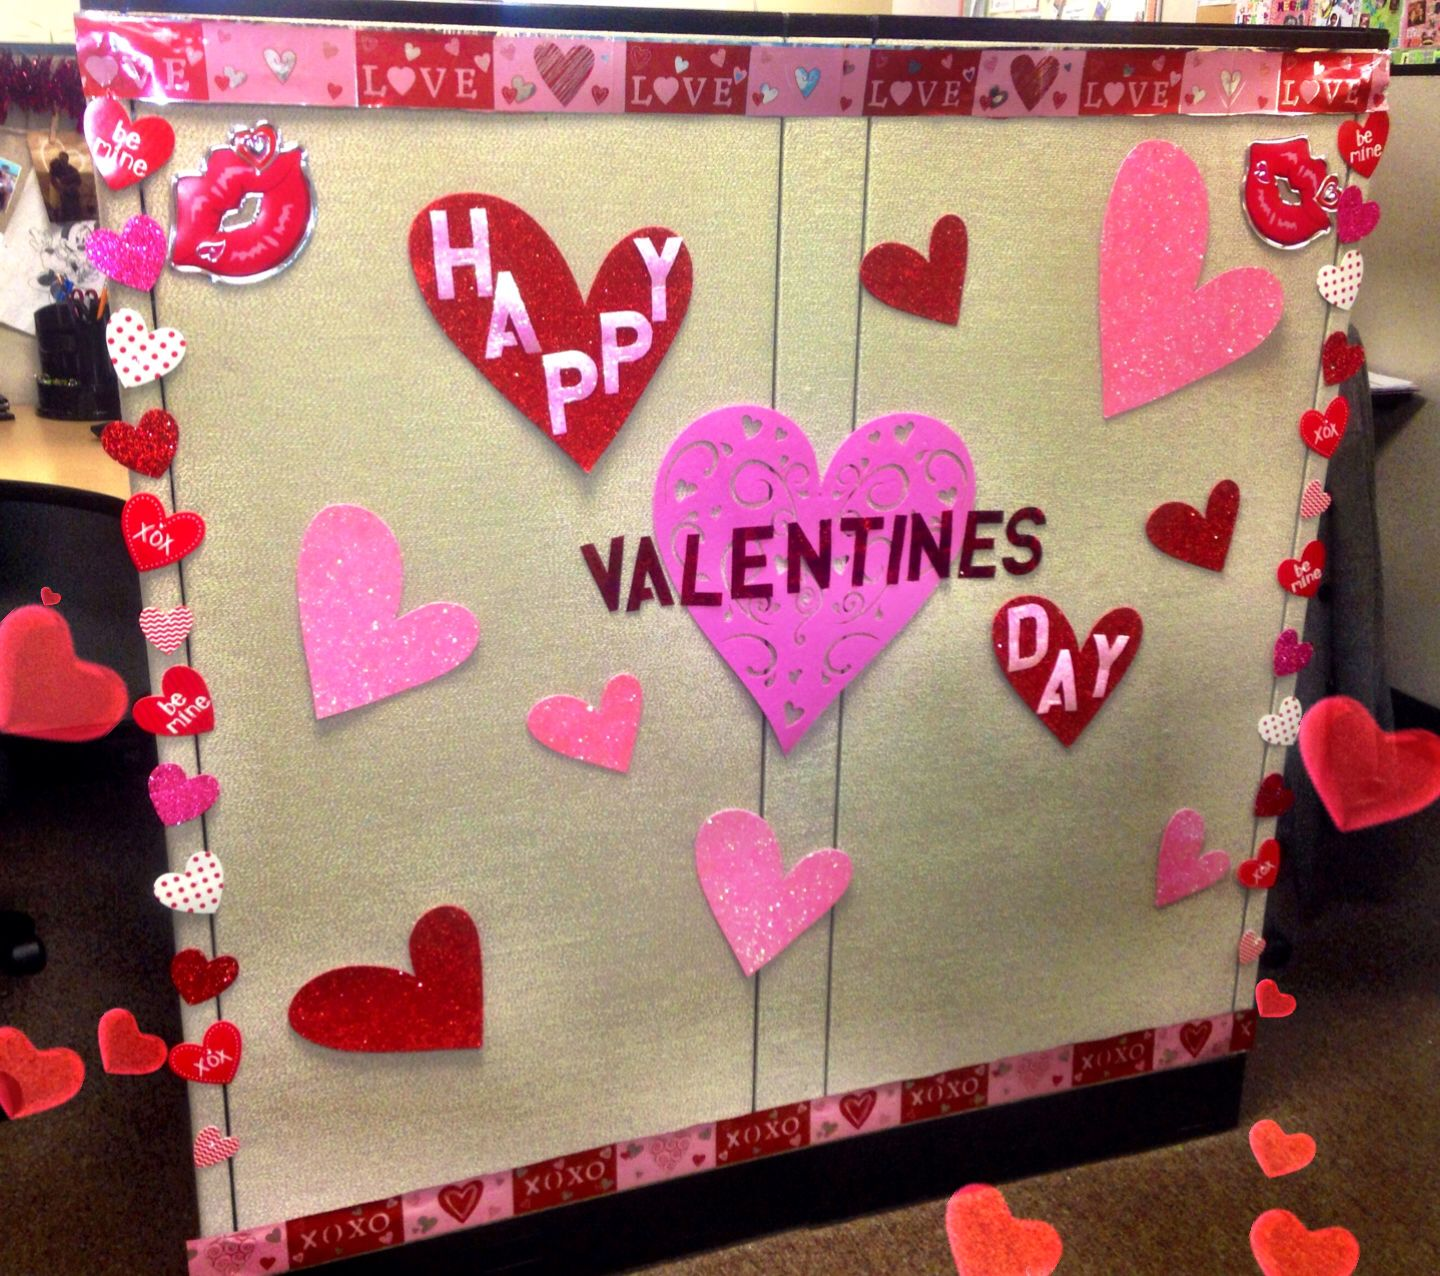 Cubicle Decor Valentines Day Valentine Decorations Valentines Day Office Valentine Door Decorations